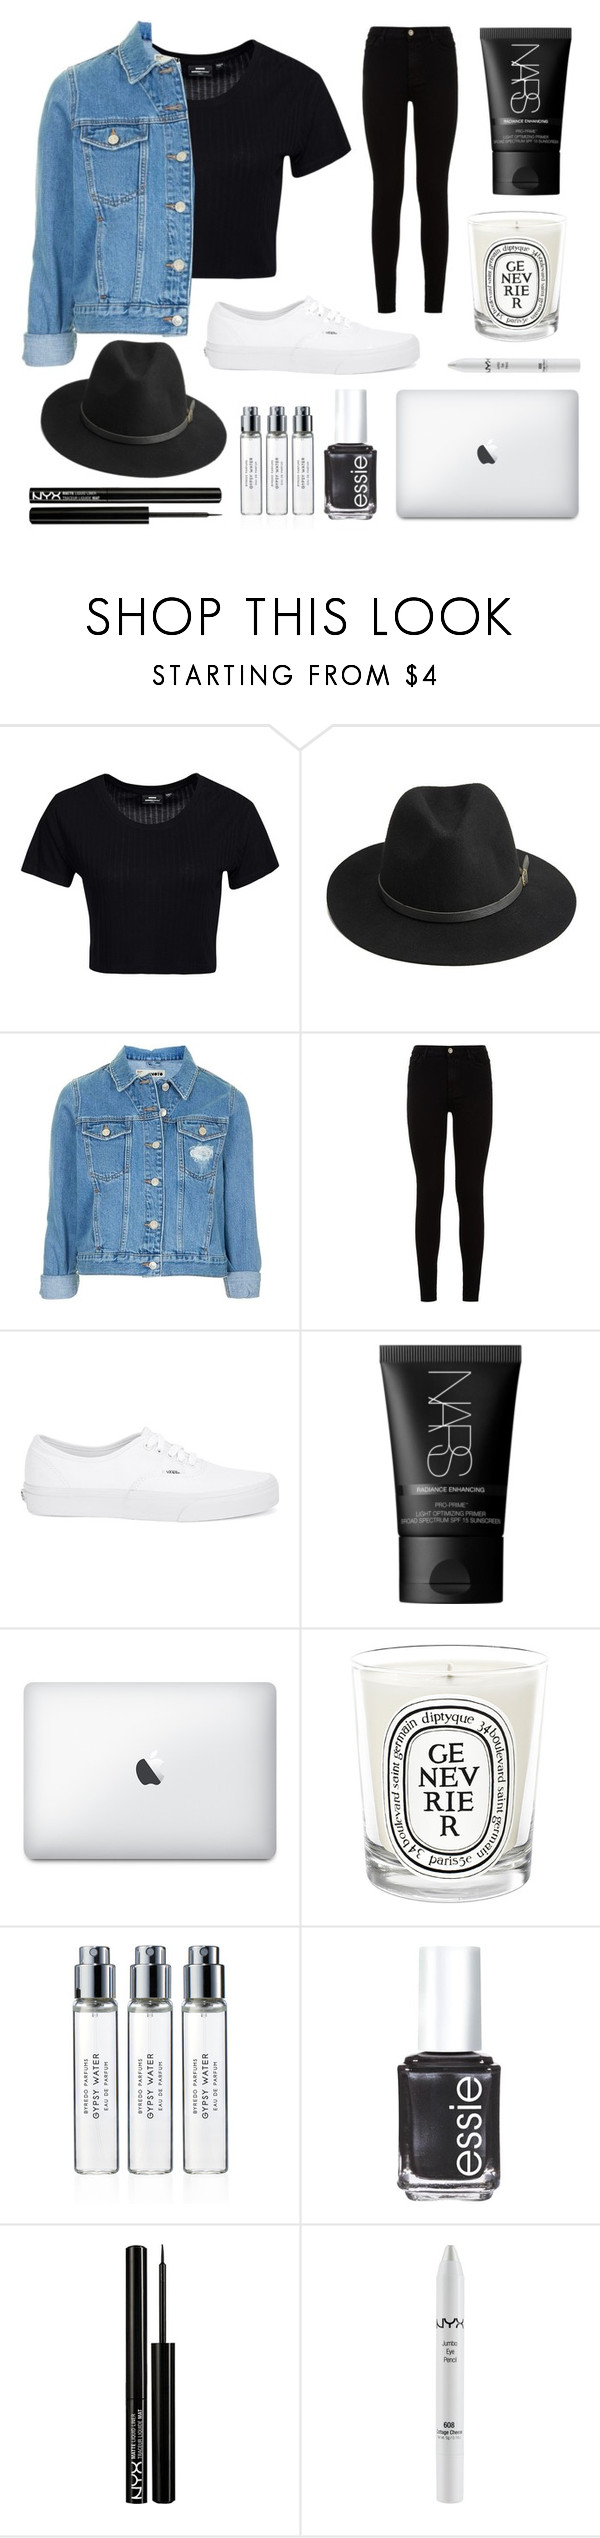 """""""maybe someday """" by anomalyyy ❤ liked on Polyvore featuring Dr. Denim, BeckSöndergaard, Topshop, 7 For All Mankind, Vans, NARS Cosmetics, Diptyque, Byredo, Essie and NYX"""